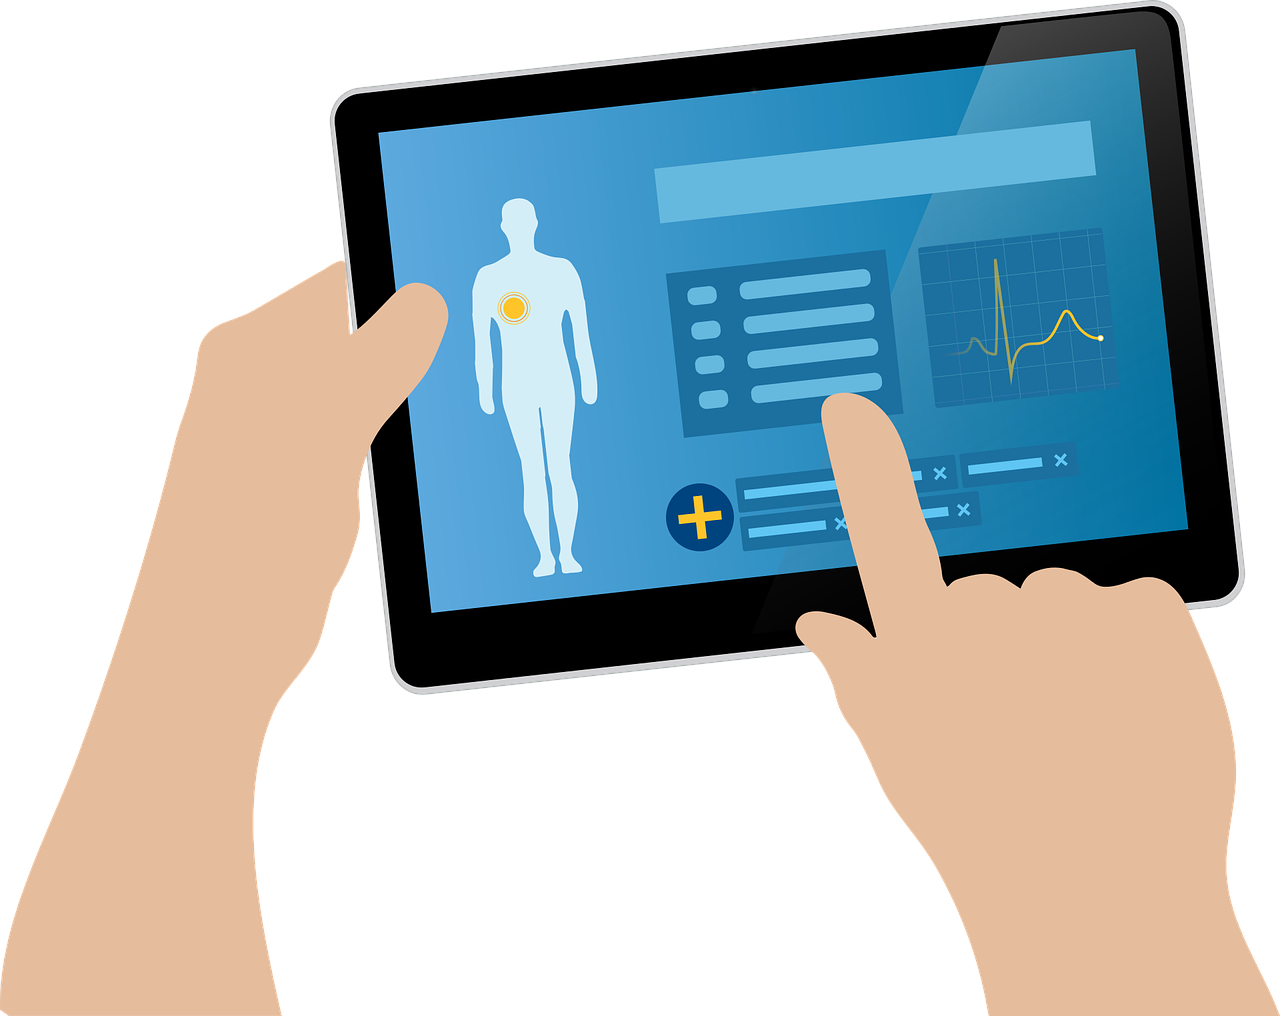 Graphic of hands holding a tablet with a health record on screen